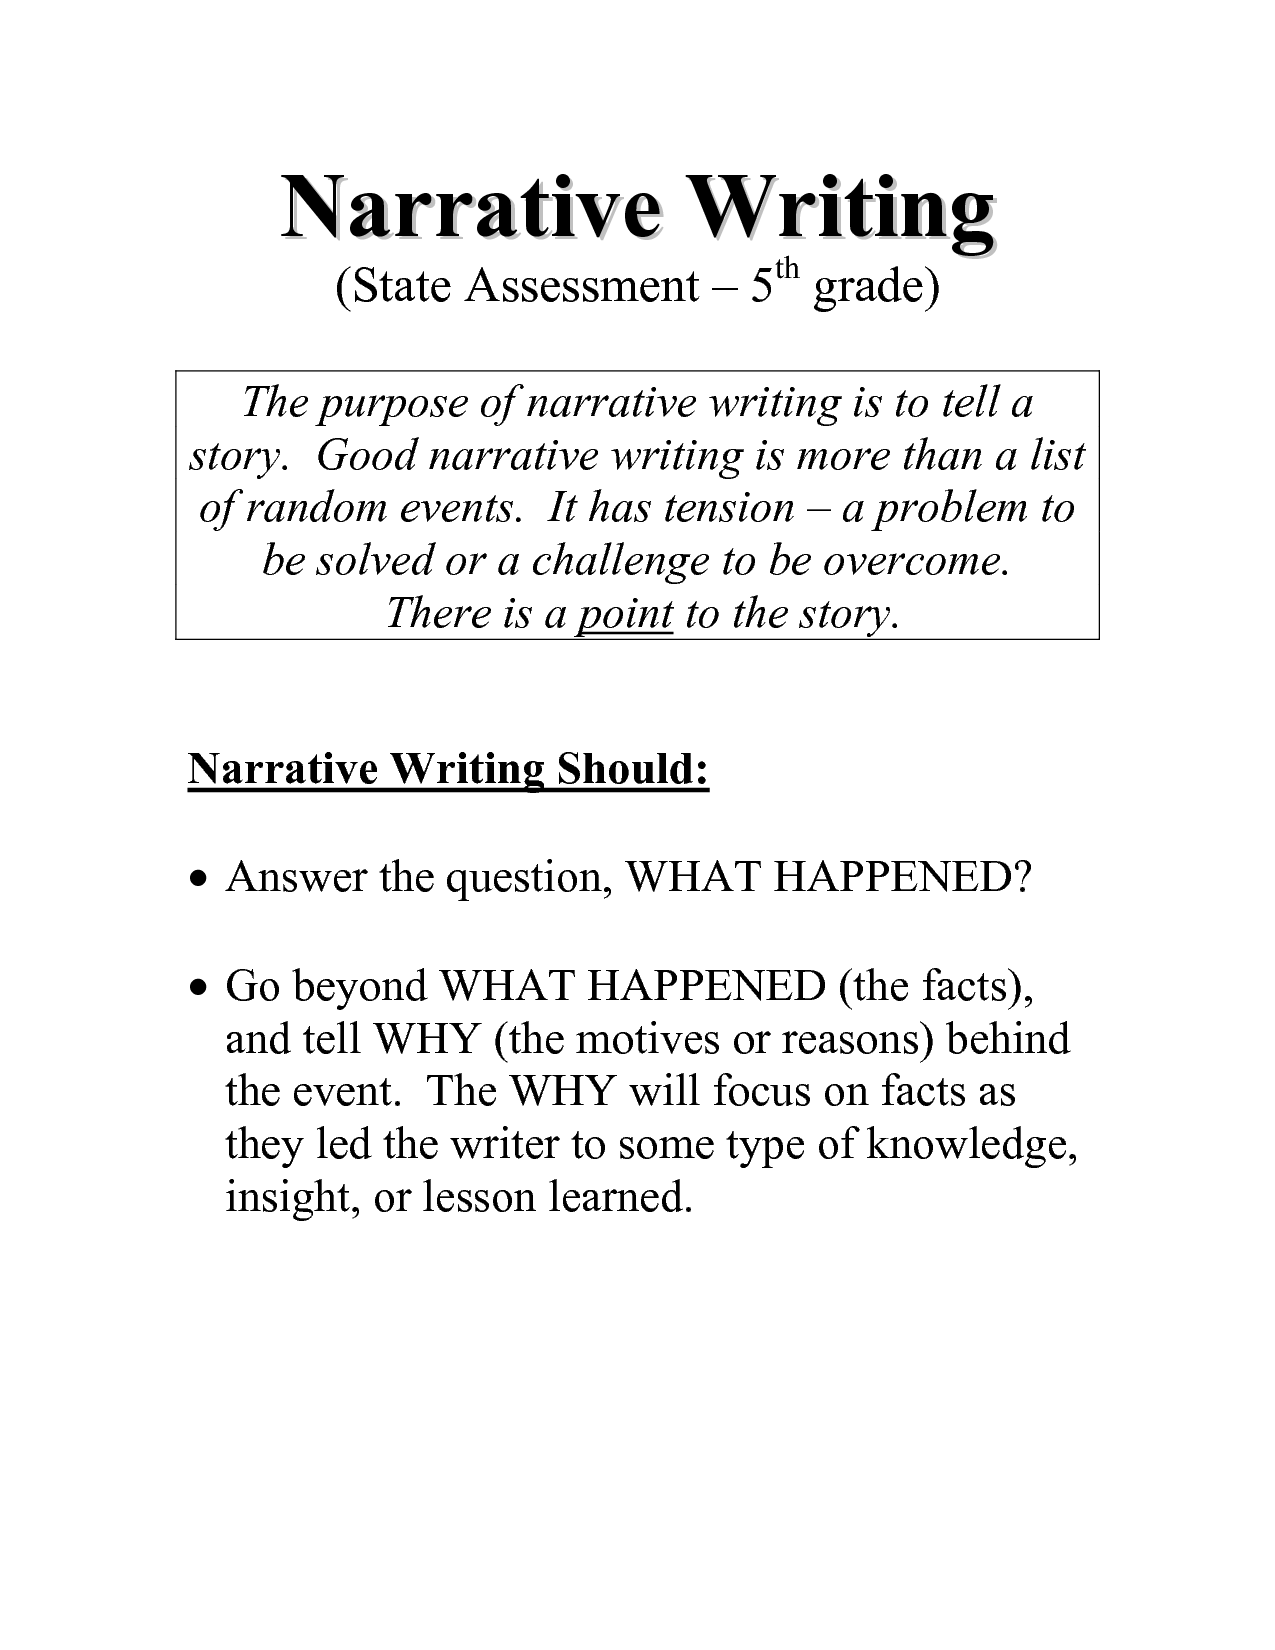 Sample of a narrative essay